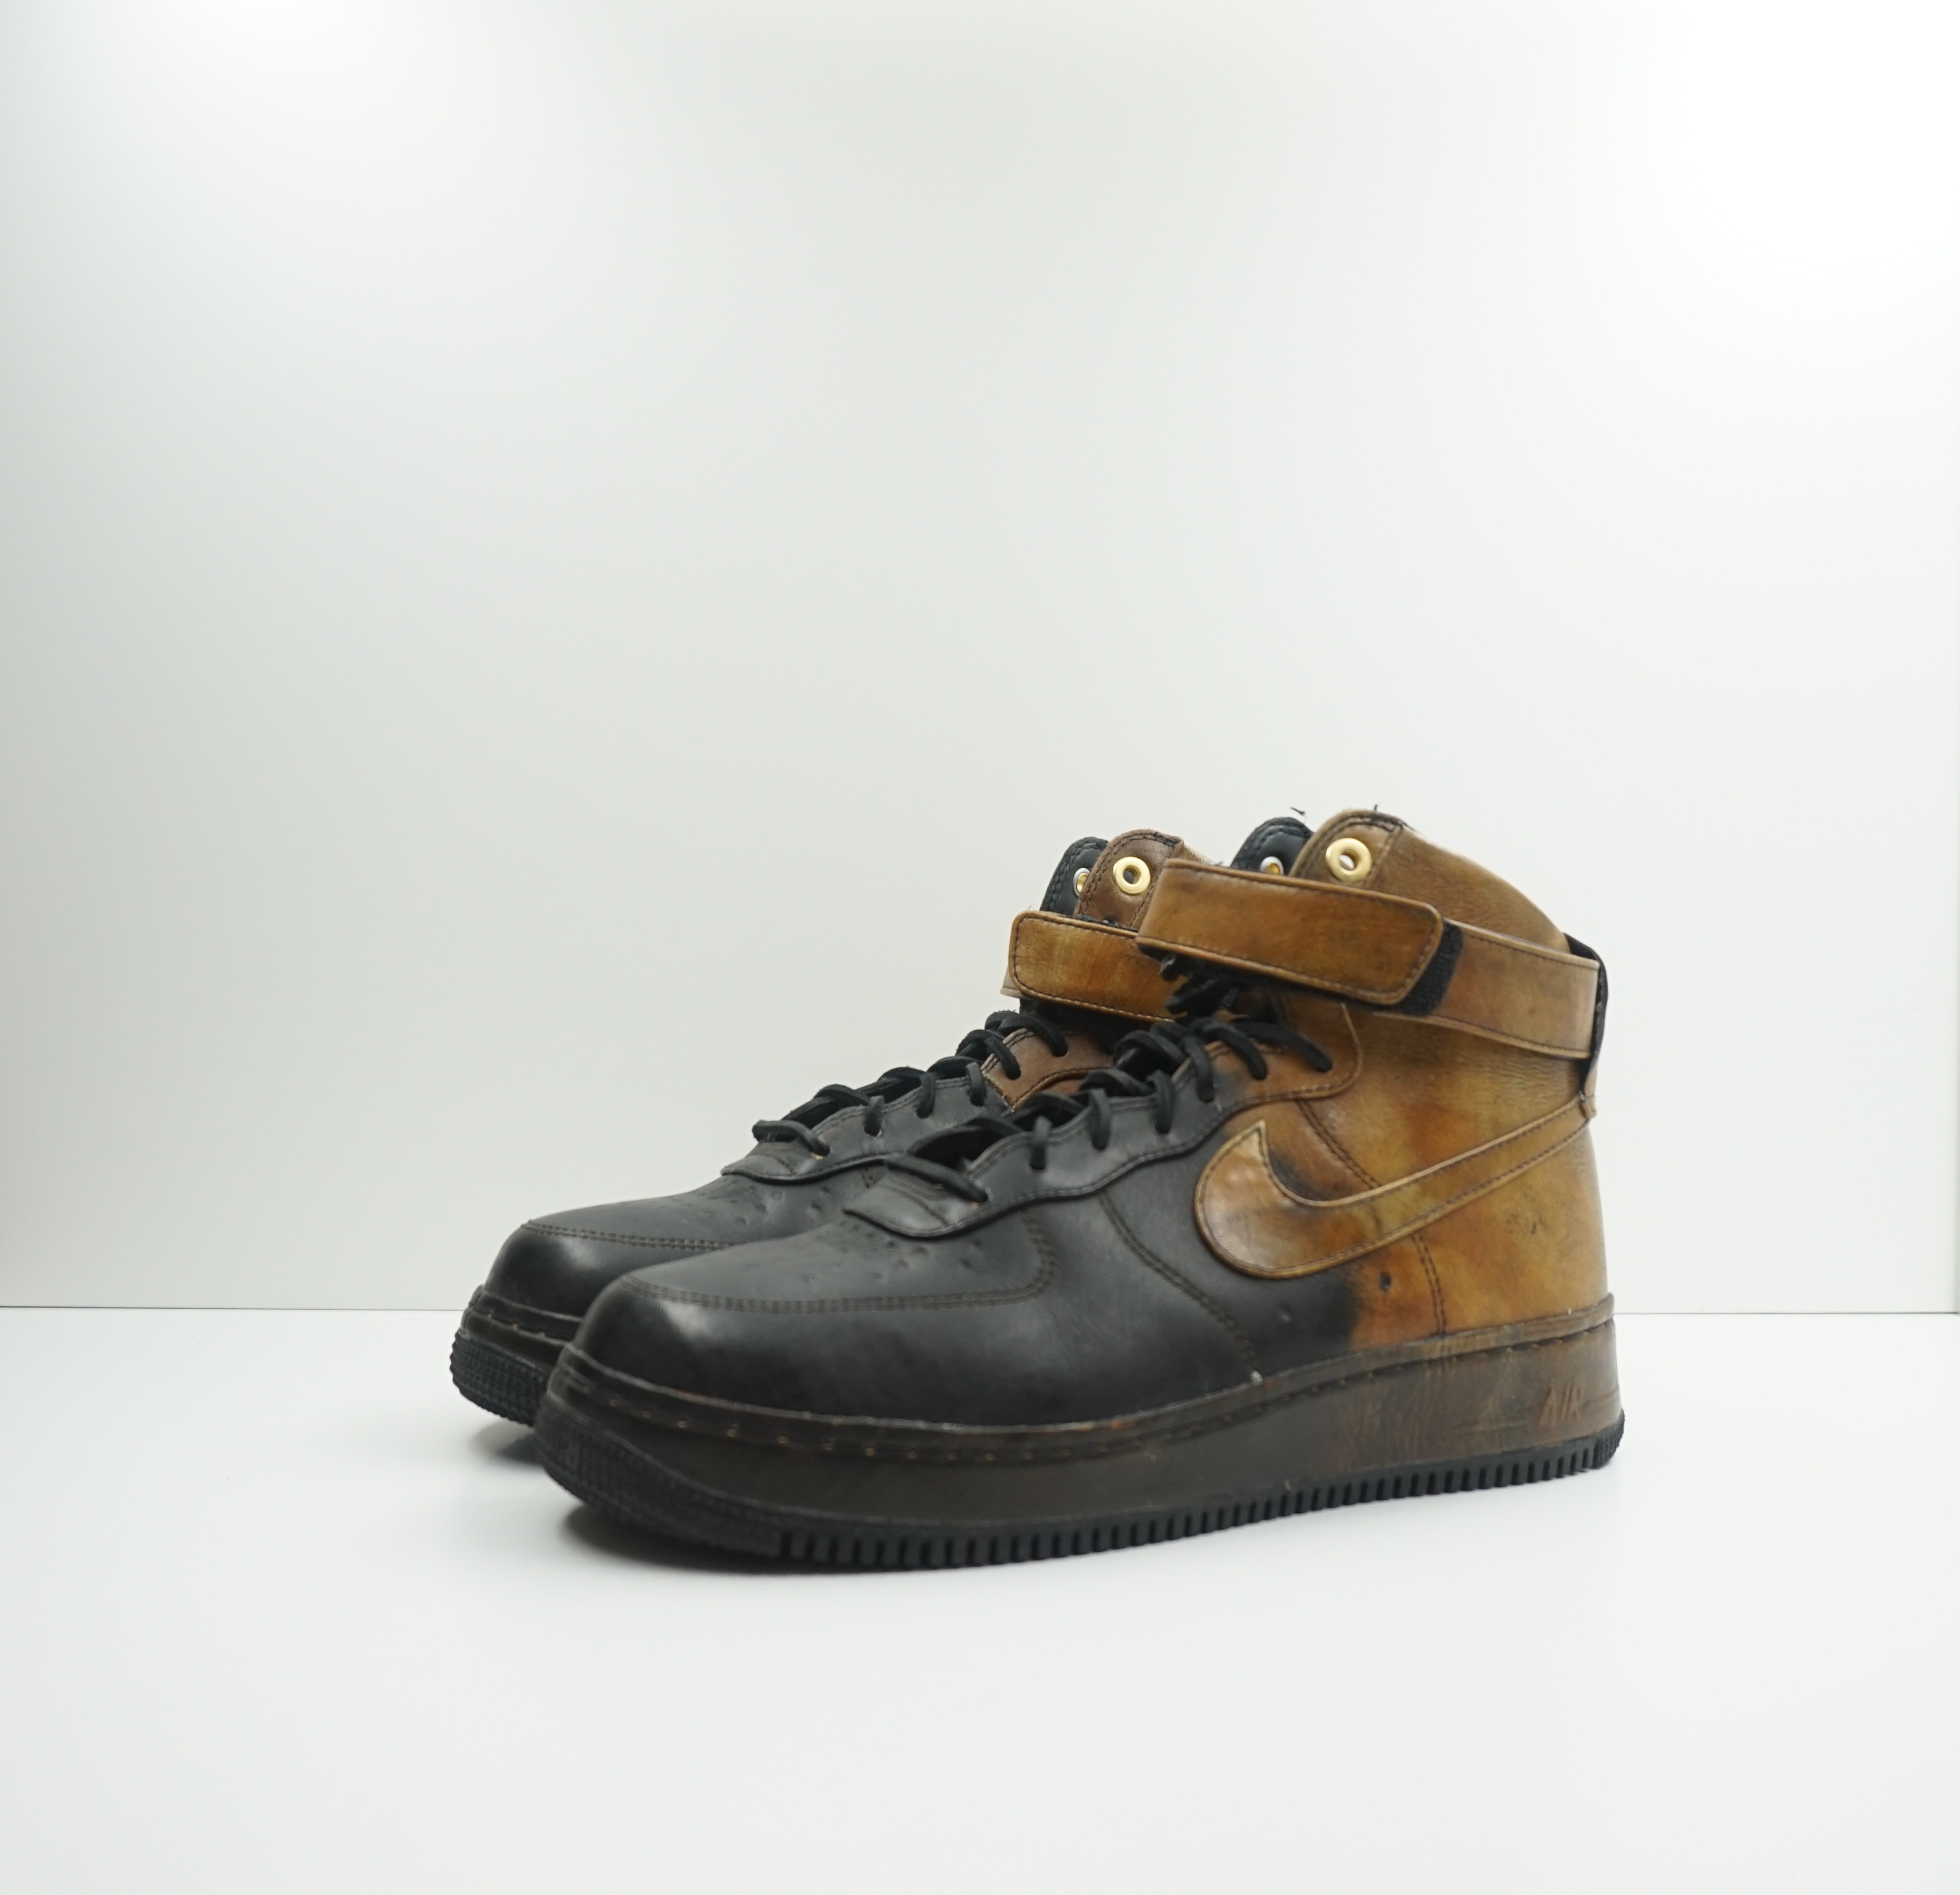 Nike Air Force 1 High Pigalle Black Gold